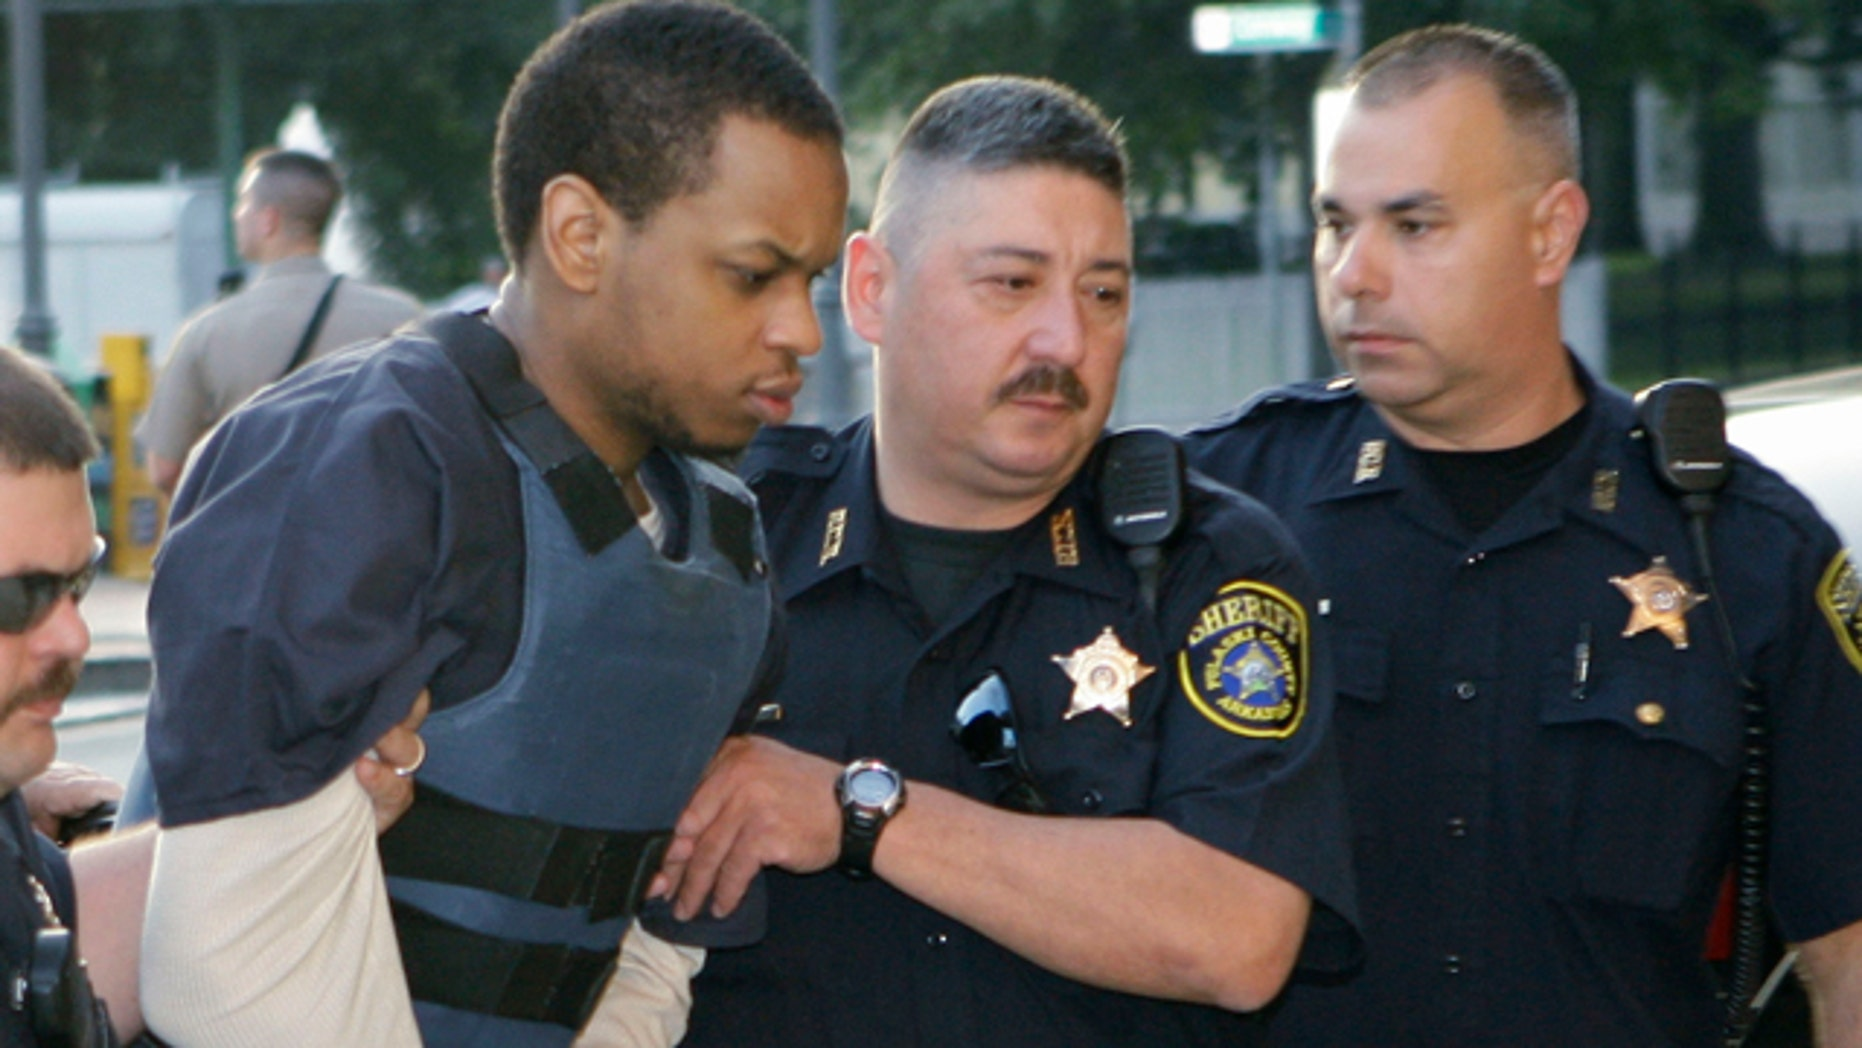 Abdulhakim Muhammad, second from left, is escorted to the Pulaski County Courthouse in Little Rock, Ark.